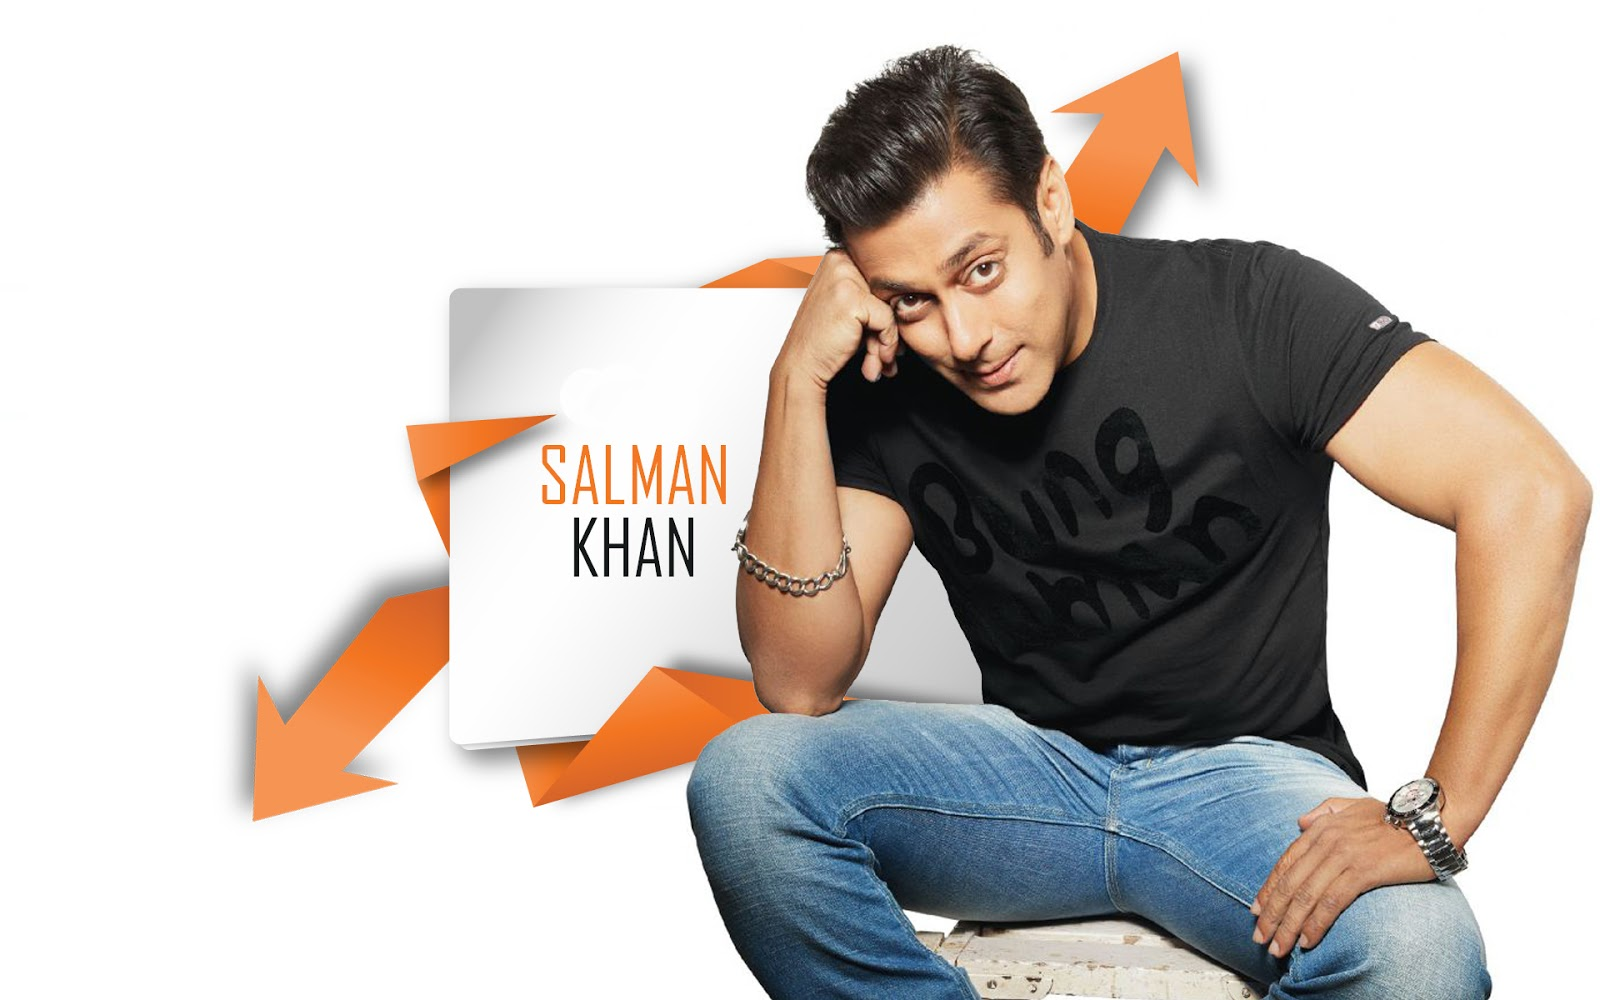 hd wallpapers: salman khan hd wallpapers images pictures photos 2015.